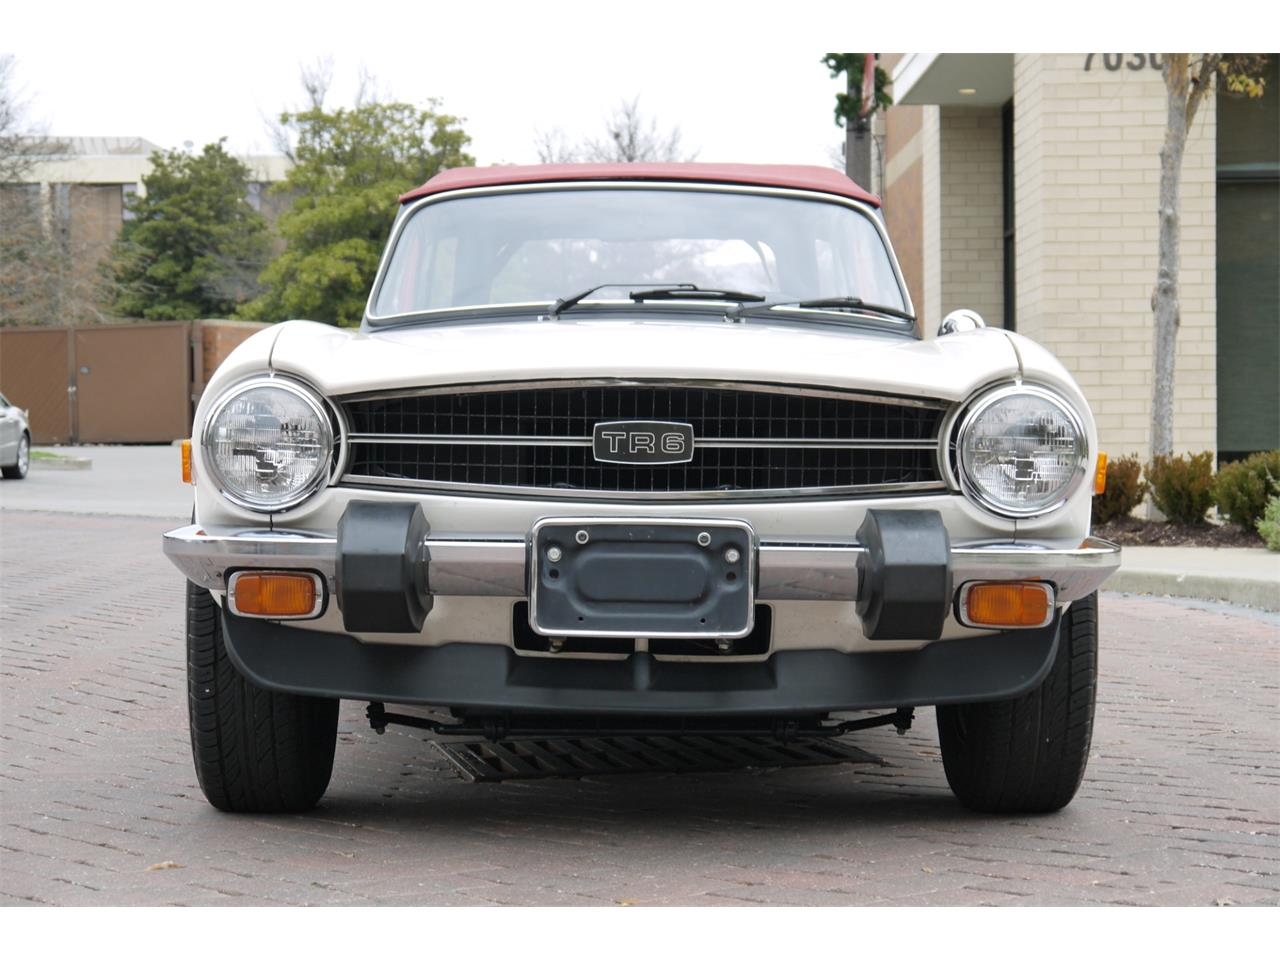 1976 Triumph TR6 for sale in Brentwood, TN – photo 19